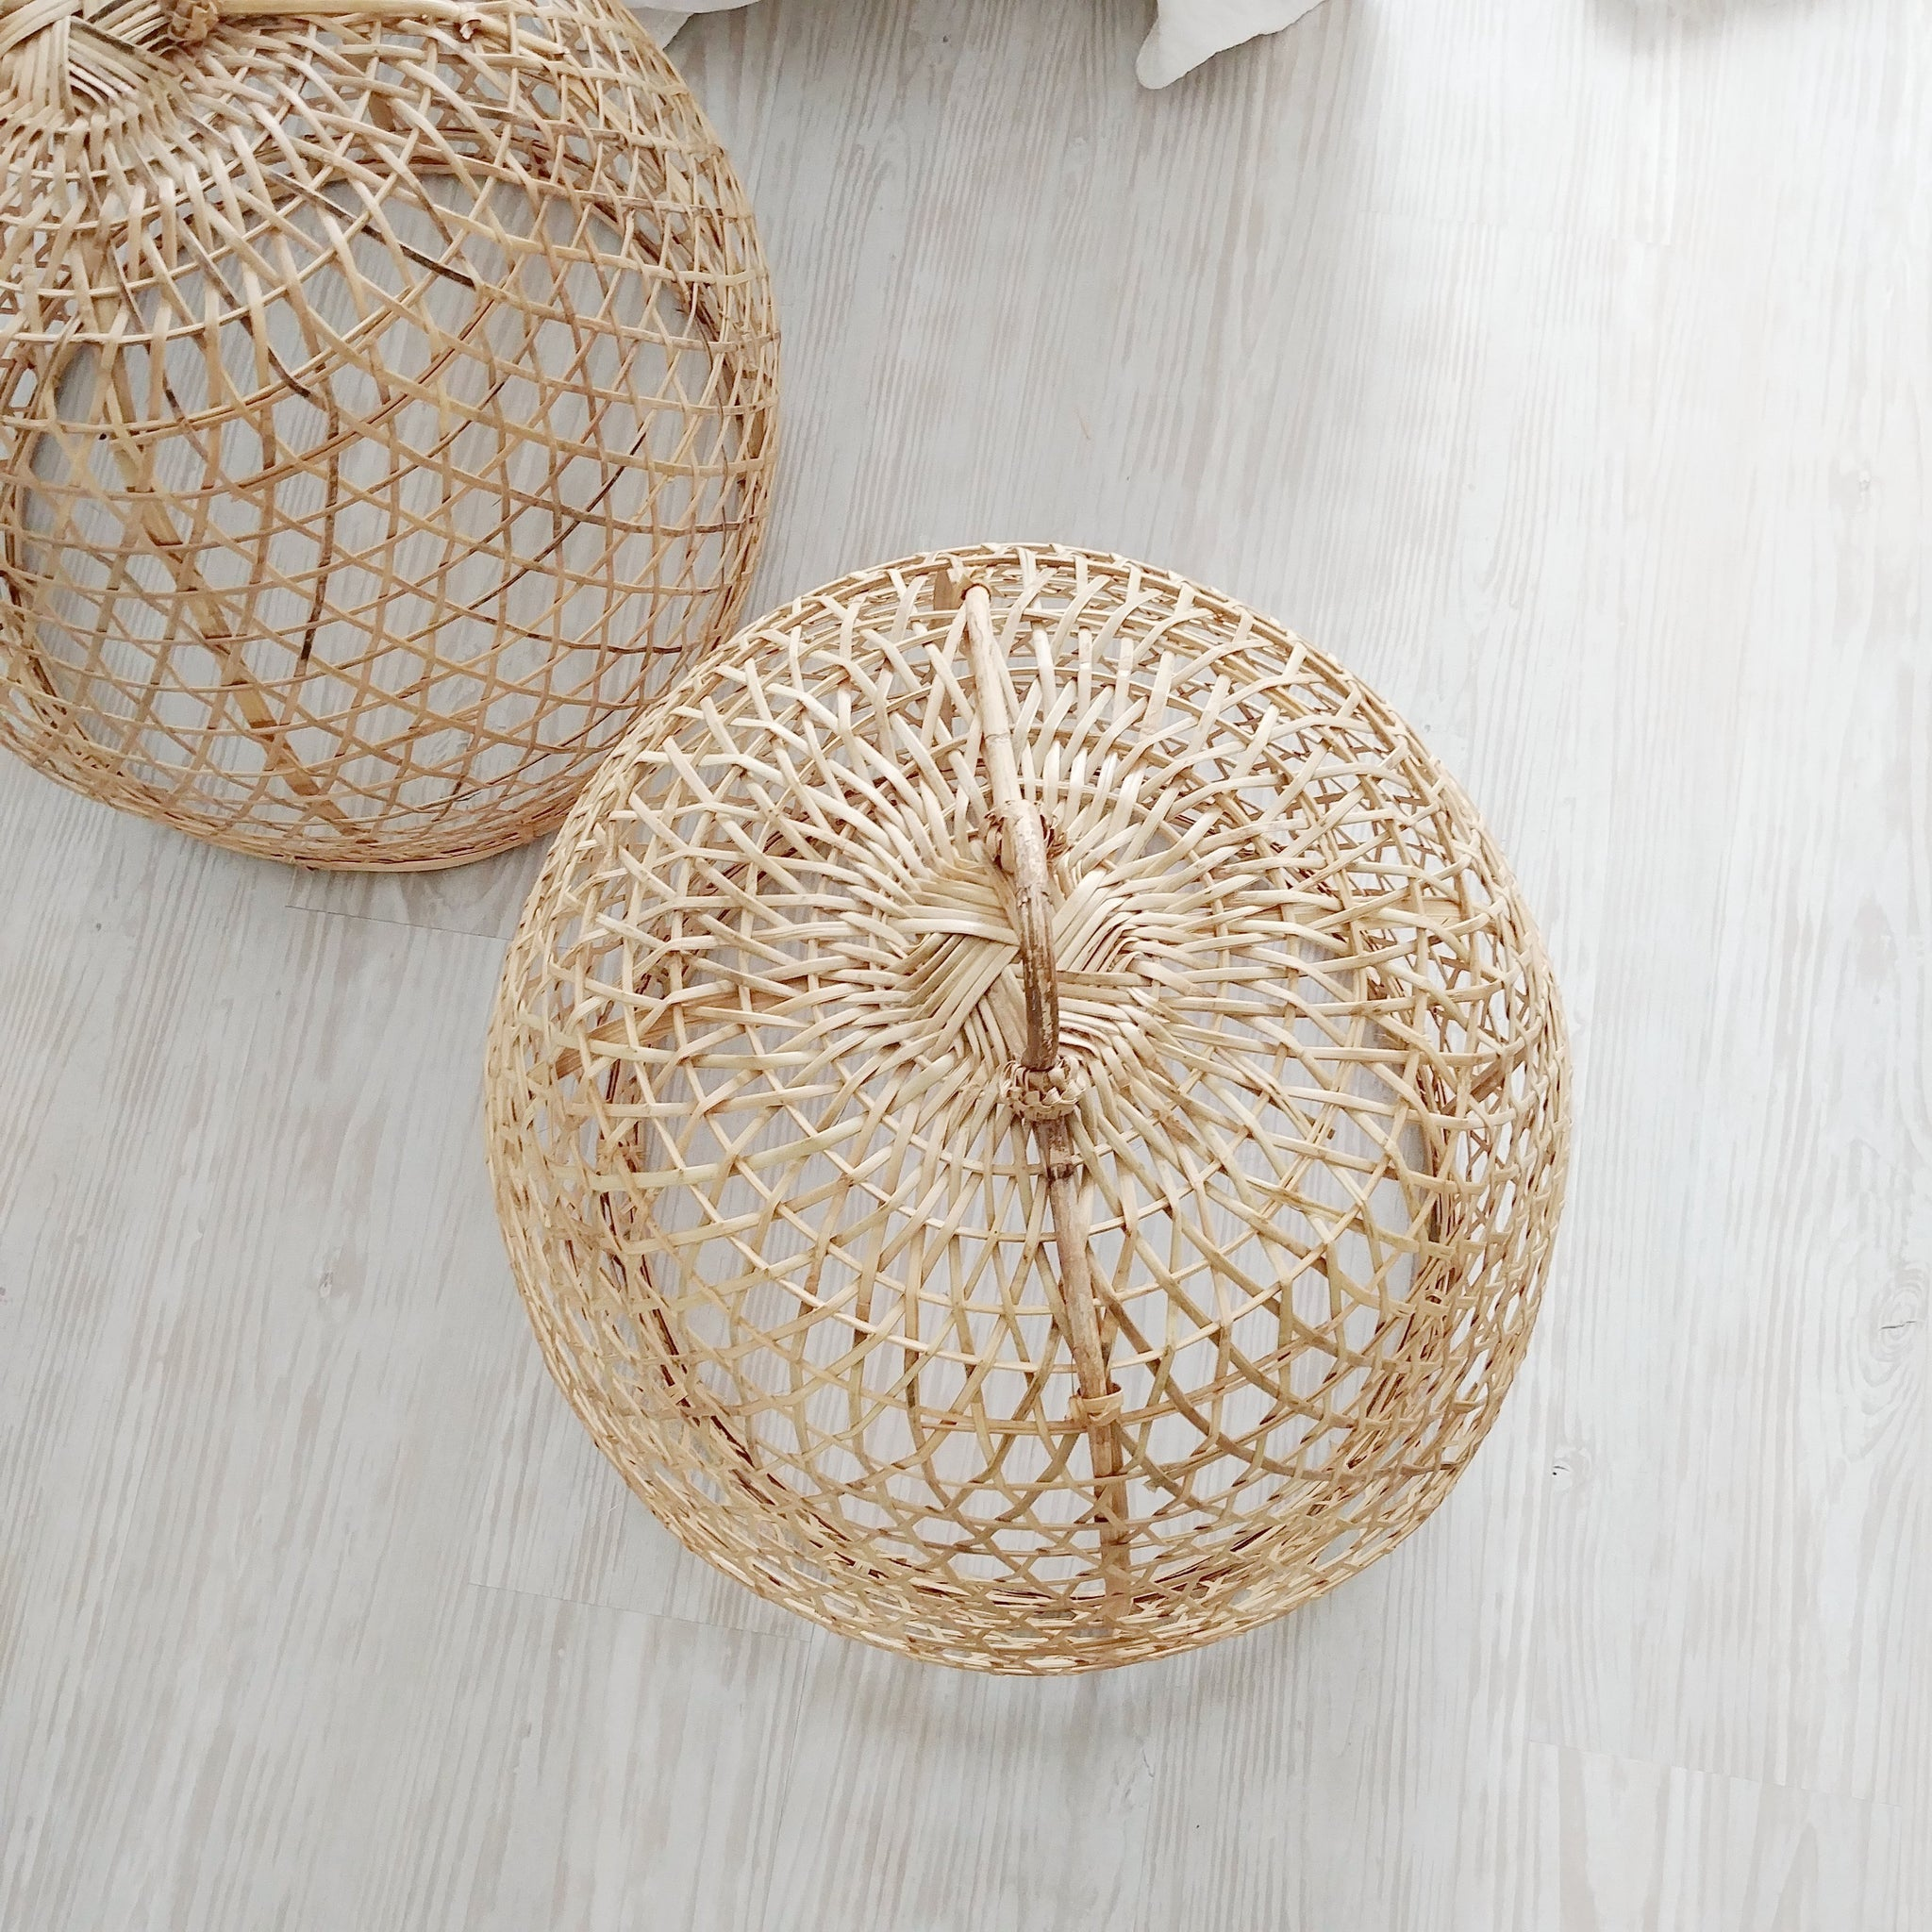 Indonesian Woven Chicken Baskets